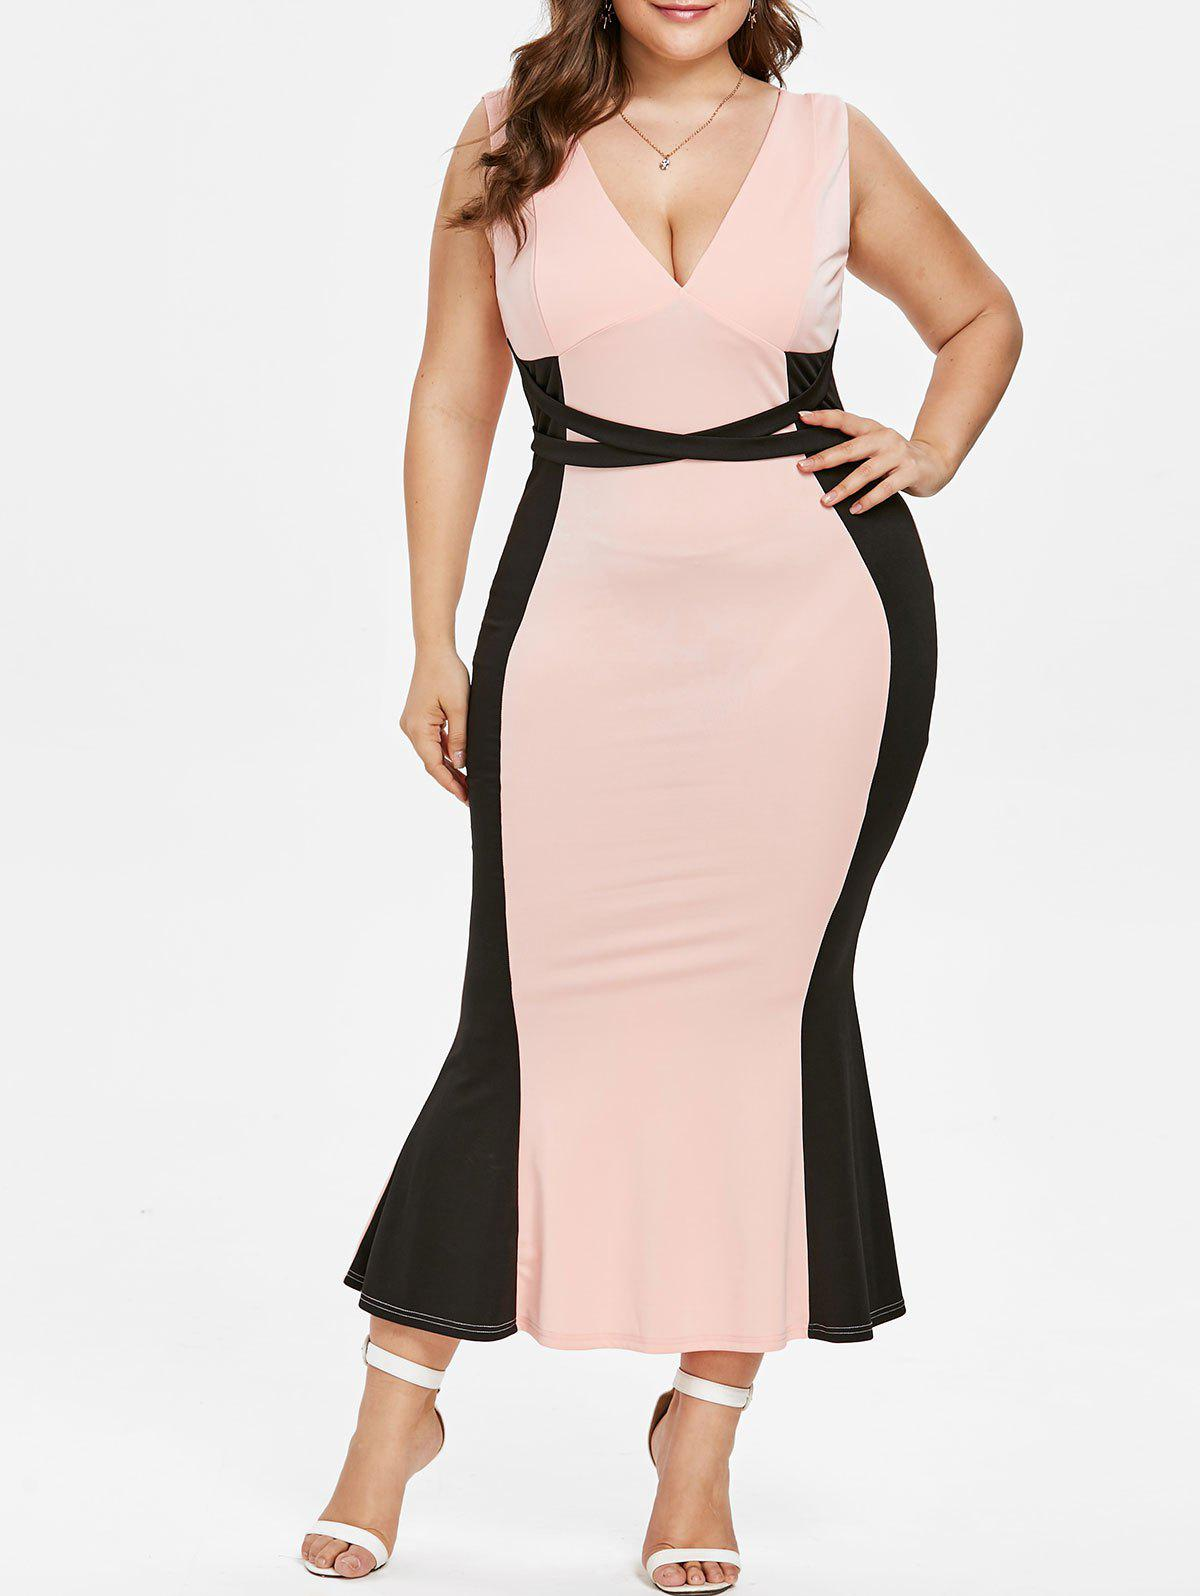 Plus Size Two Tone Maxi Fishtail Dress - LIGHT PINK 3X